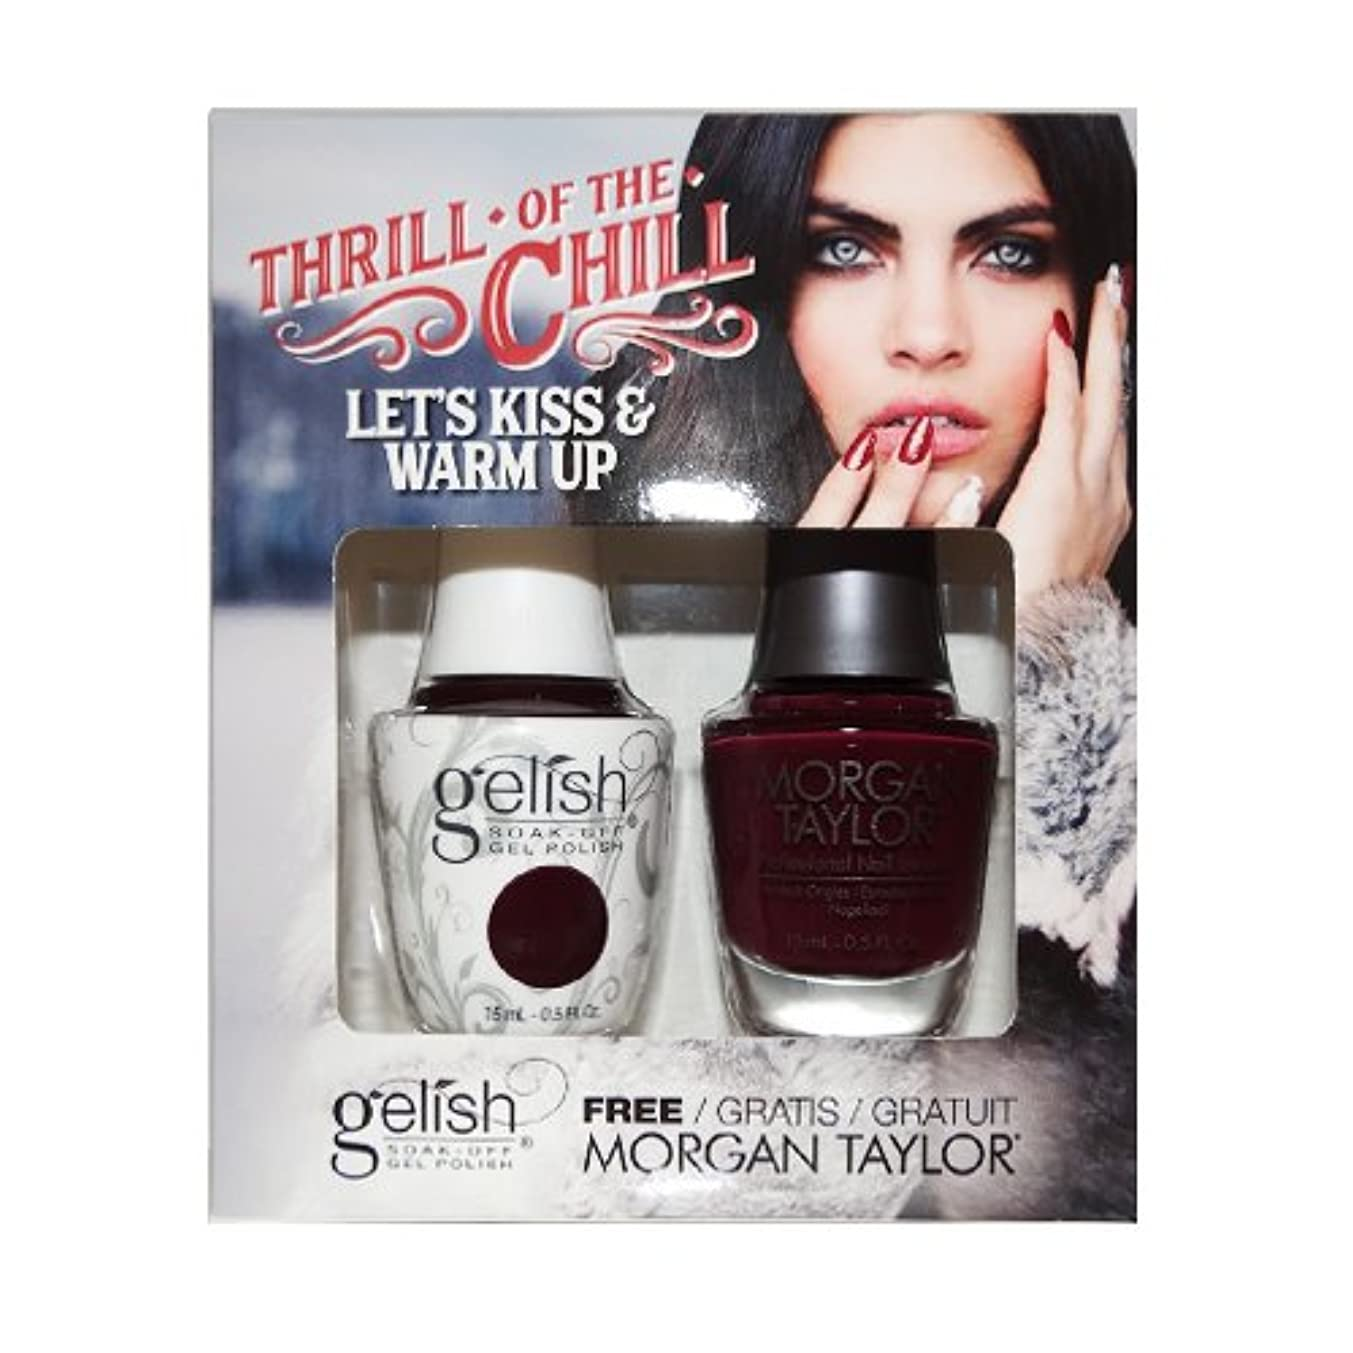 影響する議会ストロークHarmony Gelish & Morgan Taylor - Two Of A Kind - 2017 Winter Collection - Thrill Of The Chill - Let's Kiss & Warm Up